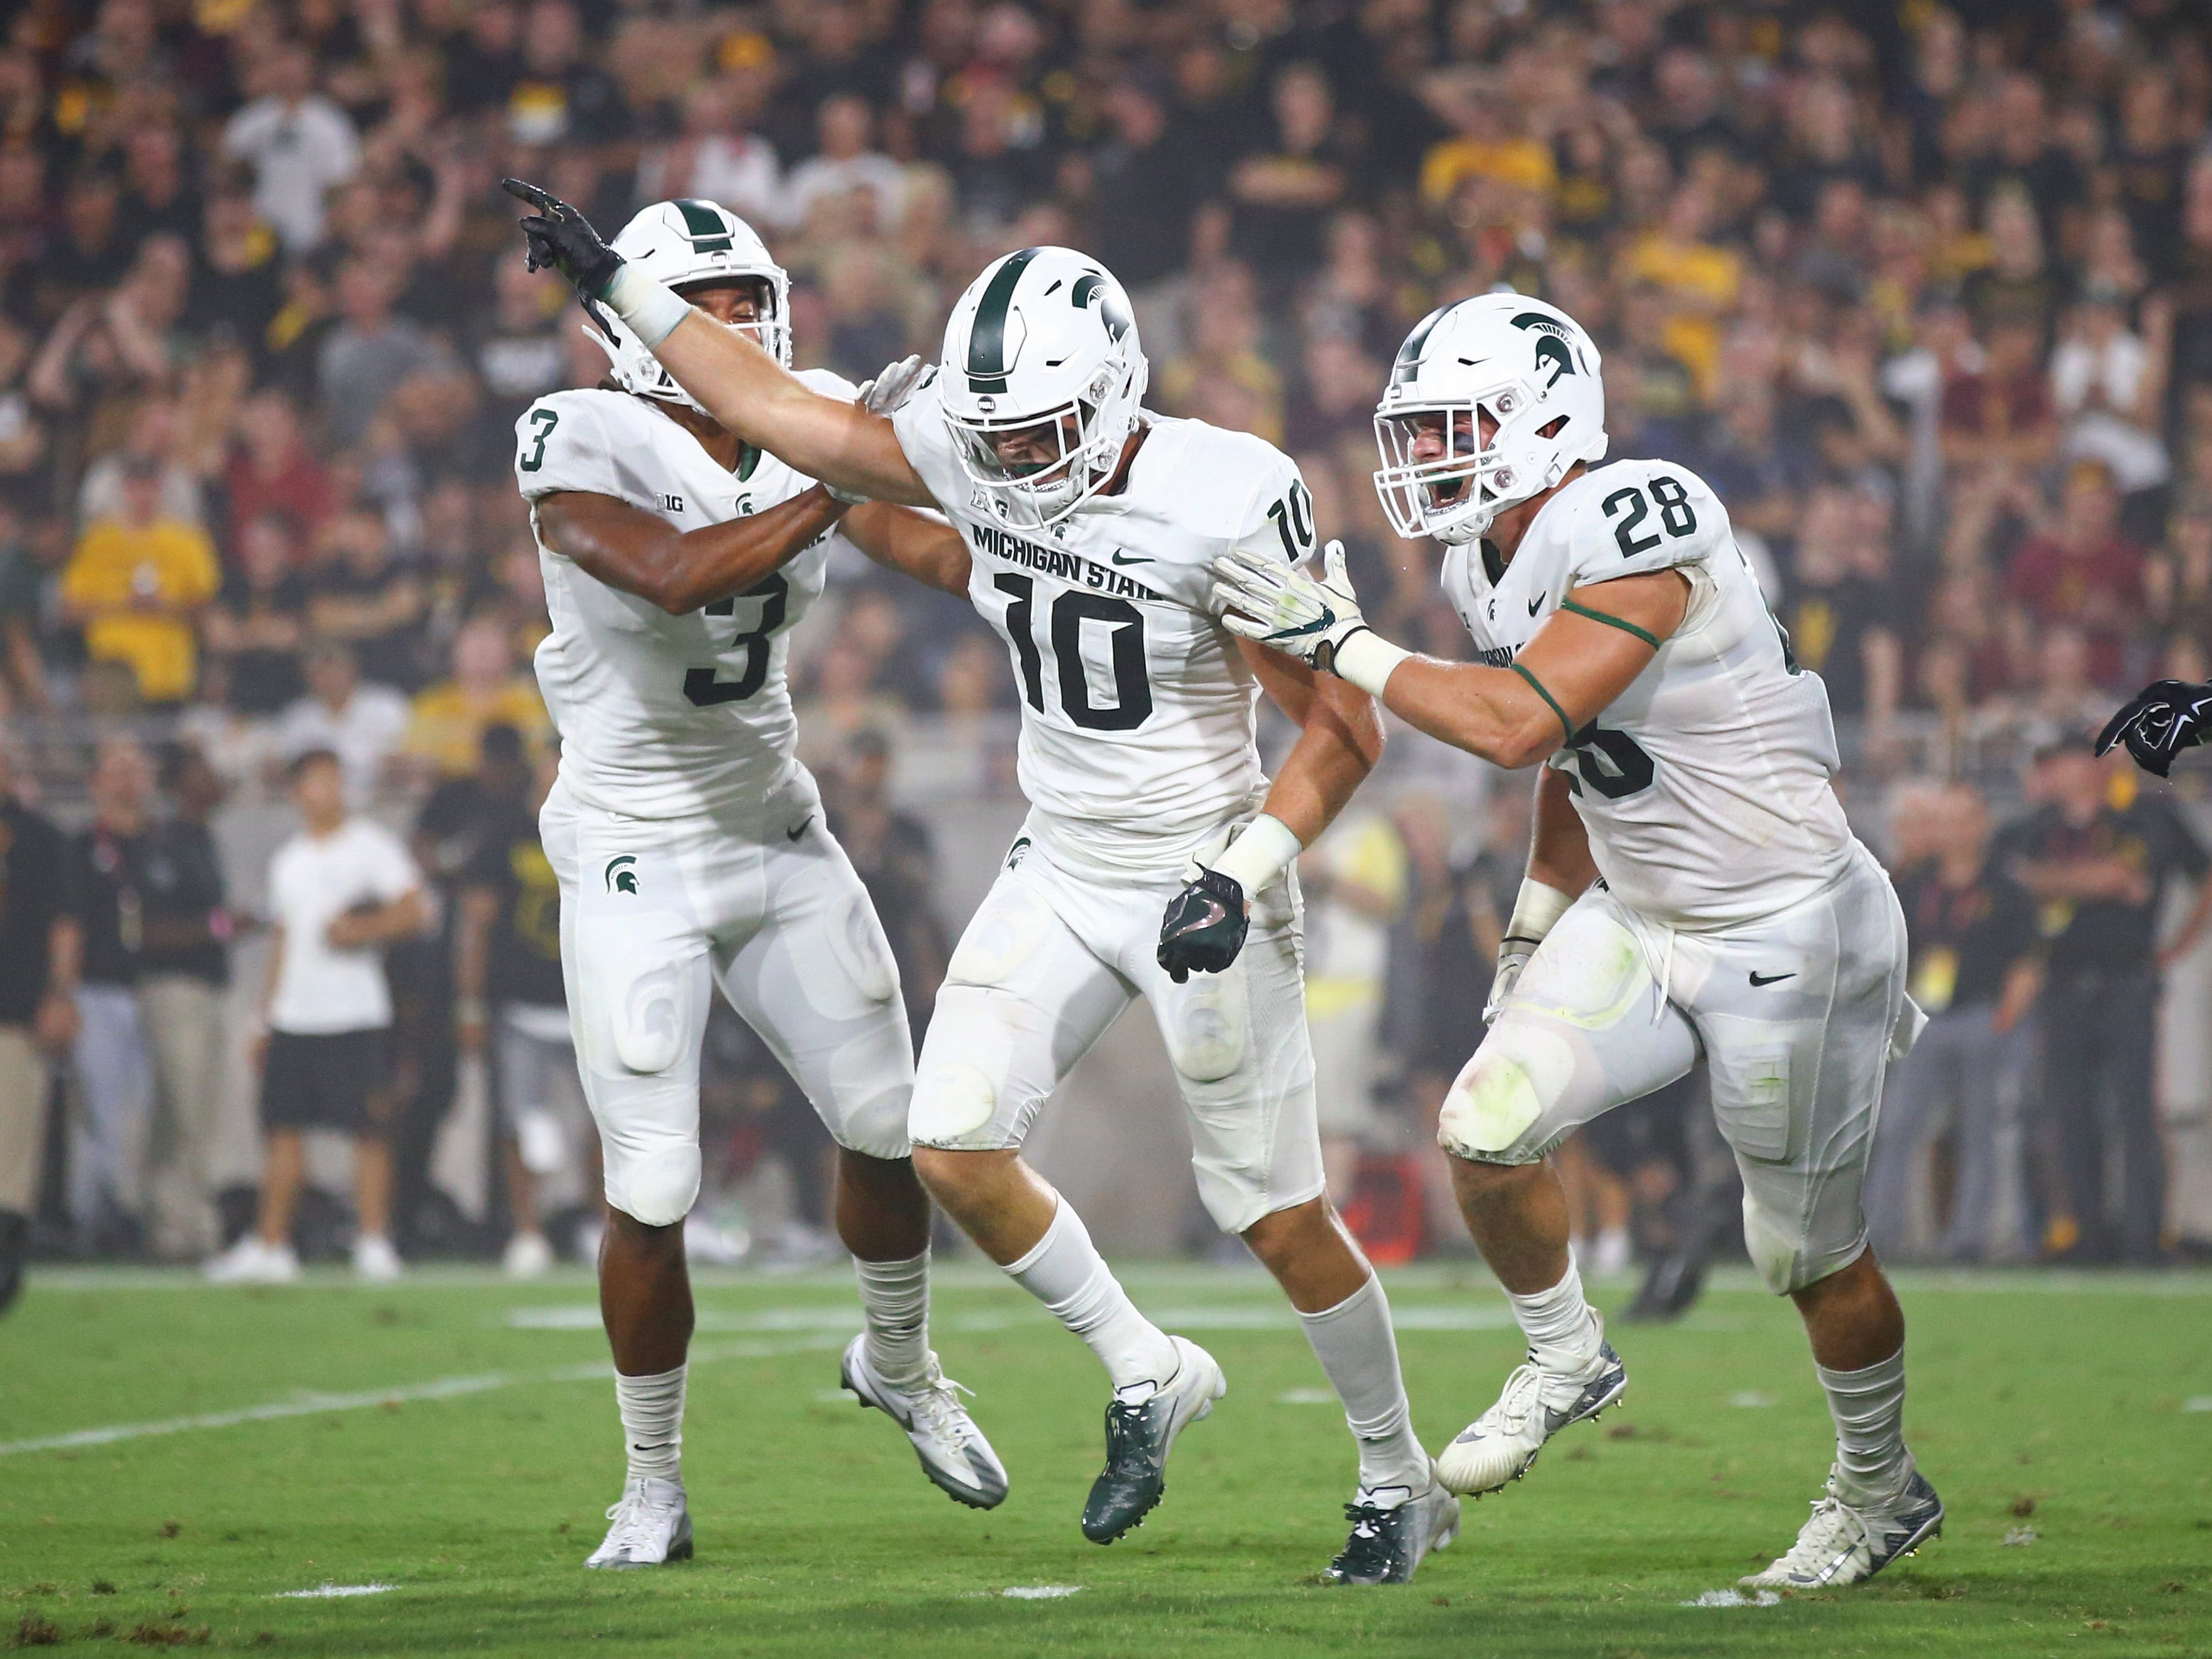 Michigan State Spartans safety Matt Morrissey (10) celebrates a second quarter interception with safety Xavier Henderson (3) and linebacker Jon Reschke (28) against the Arizona State Sun Devils at Sun Devil Stadium. Mandatory Credit: Mark J. Rebilas-USA TODAY Sports